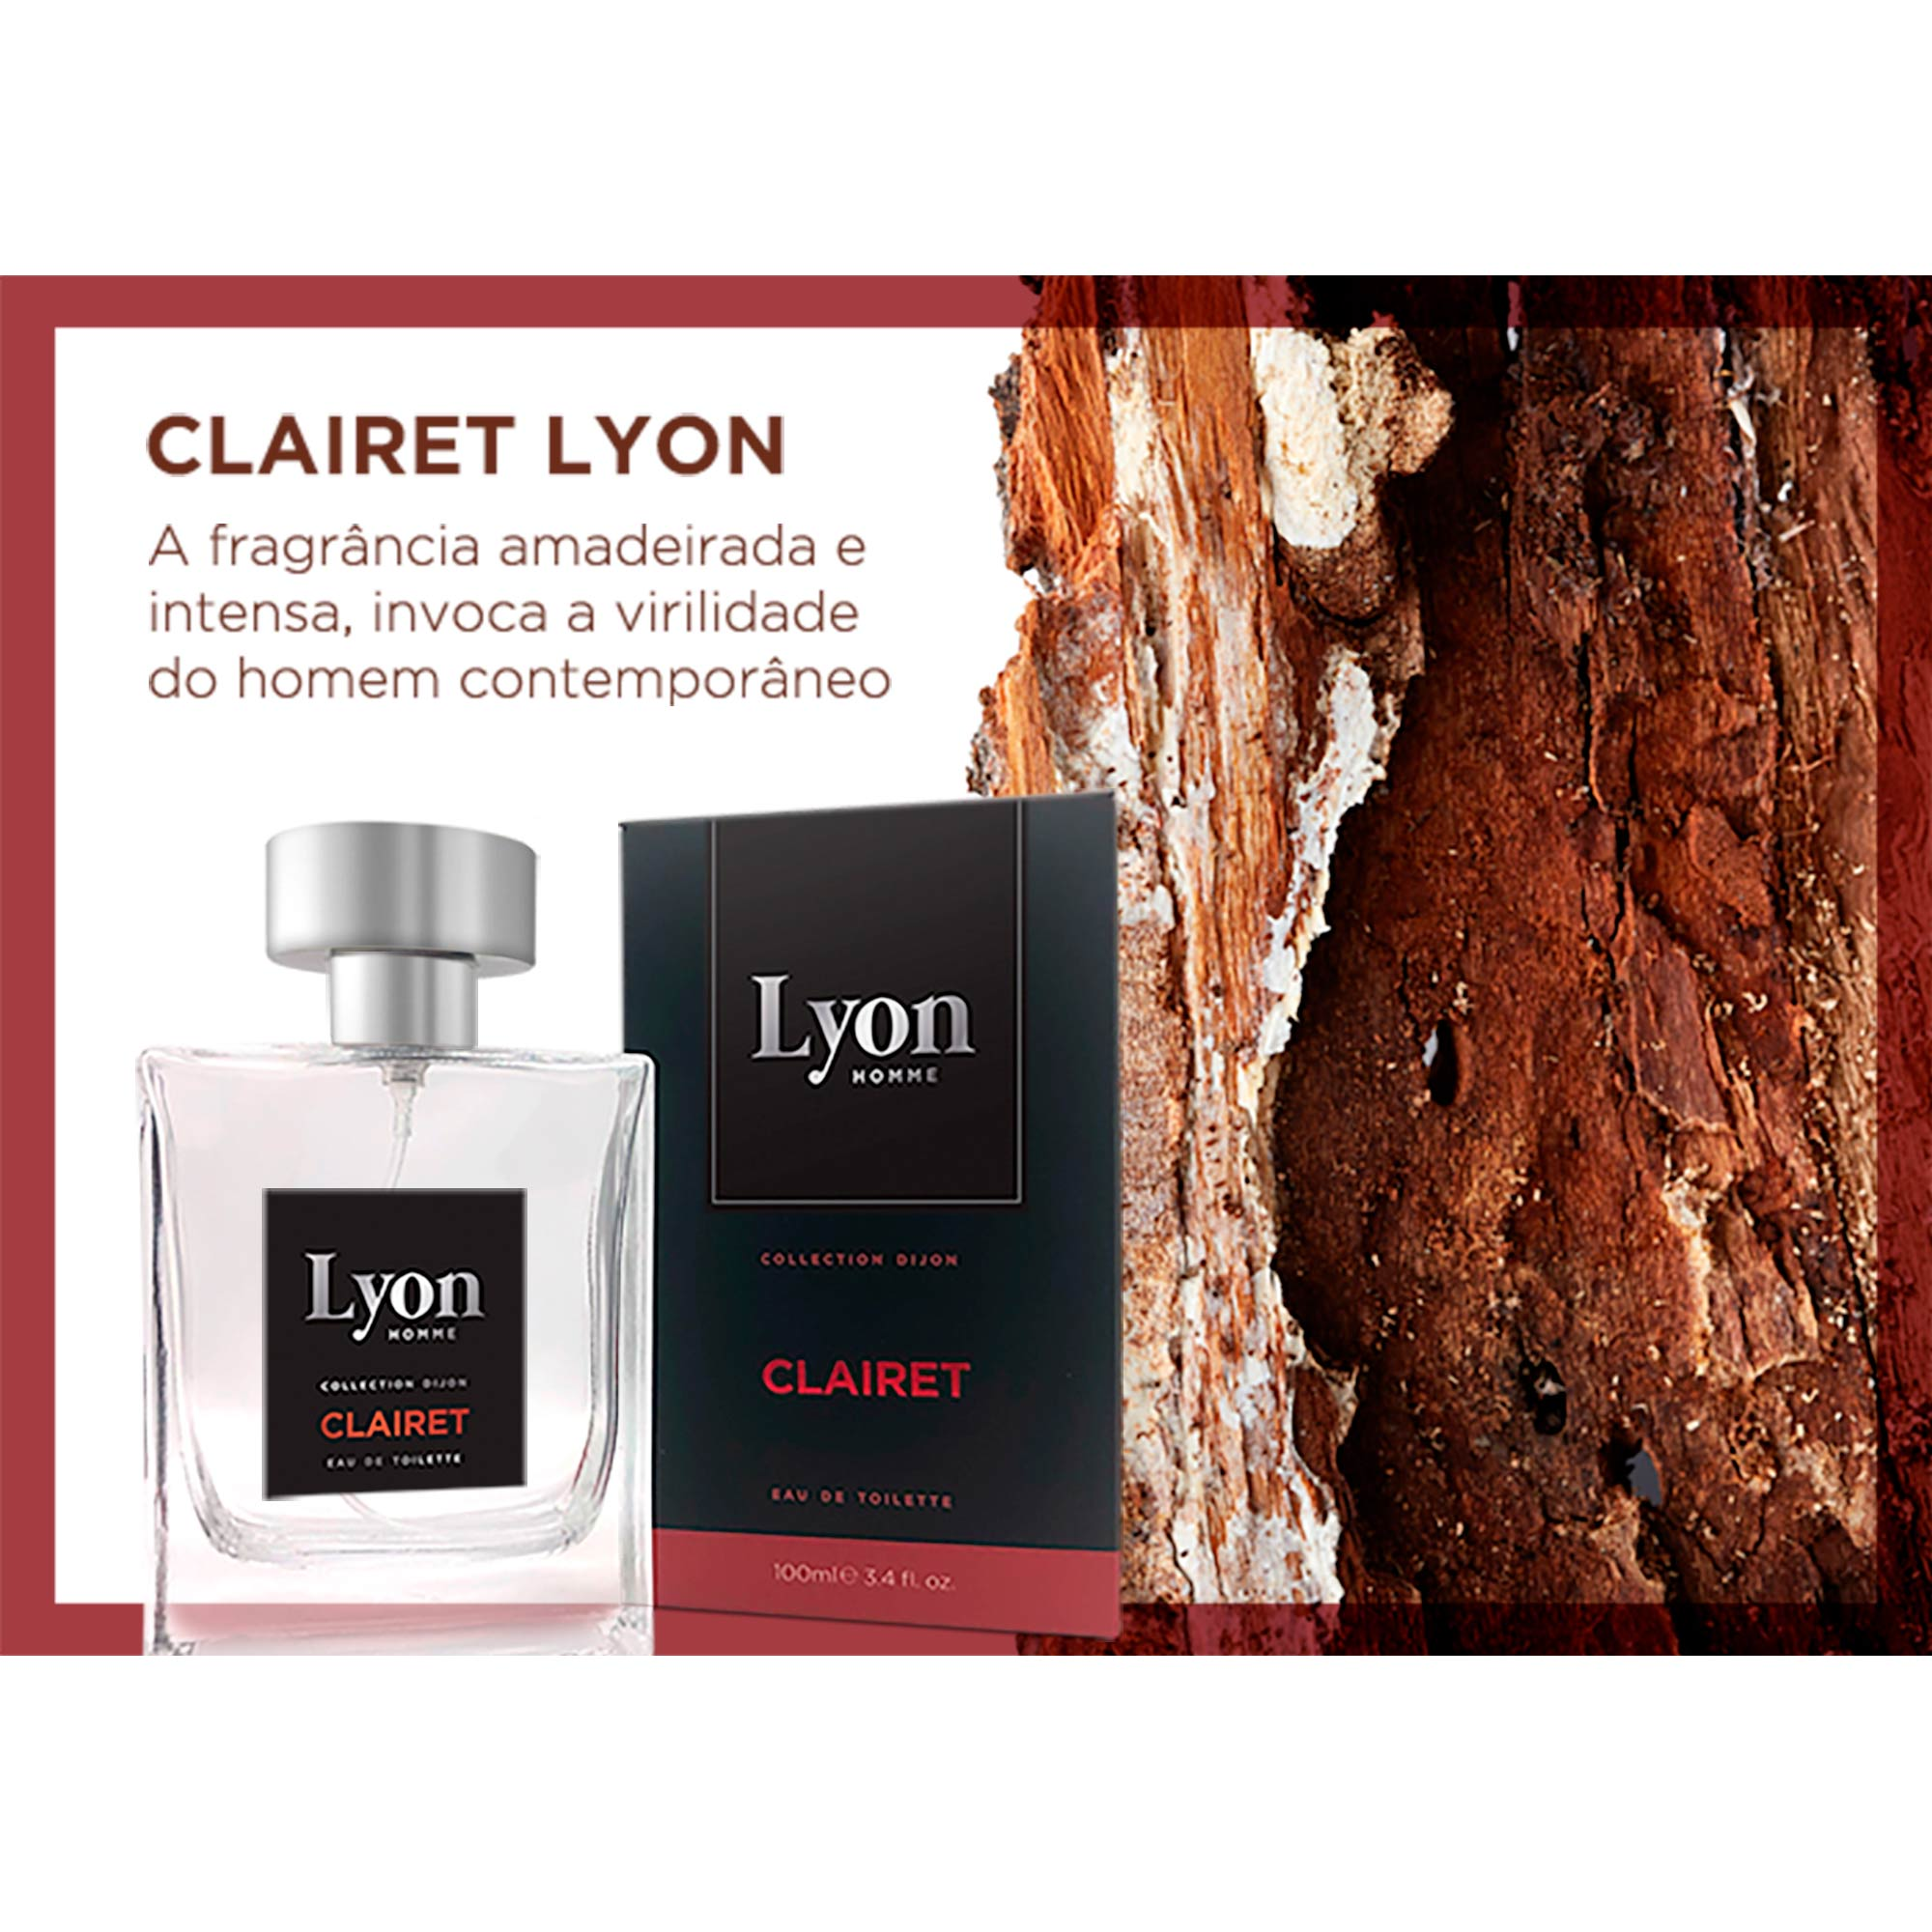 Clairet Lyon - Collection Dijon